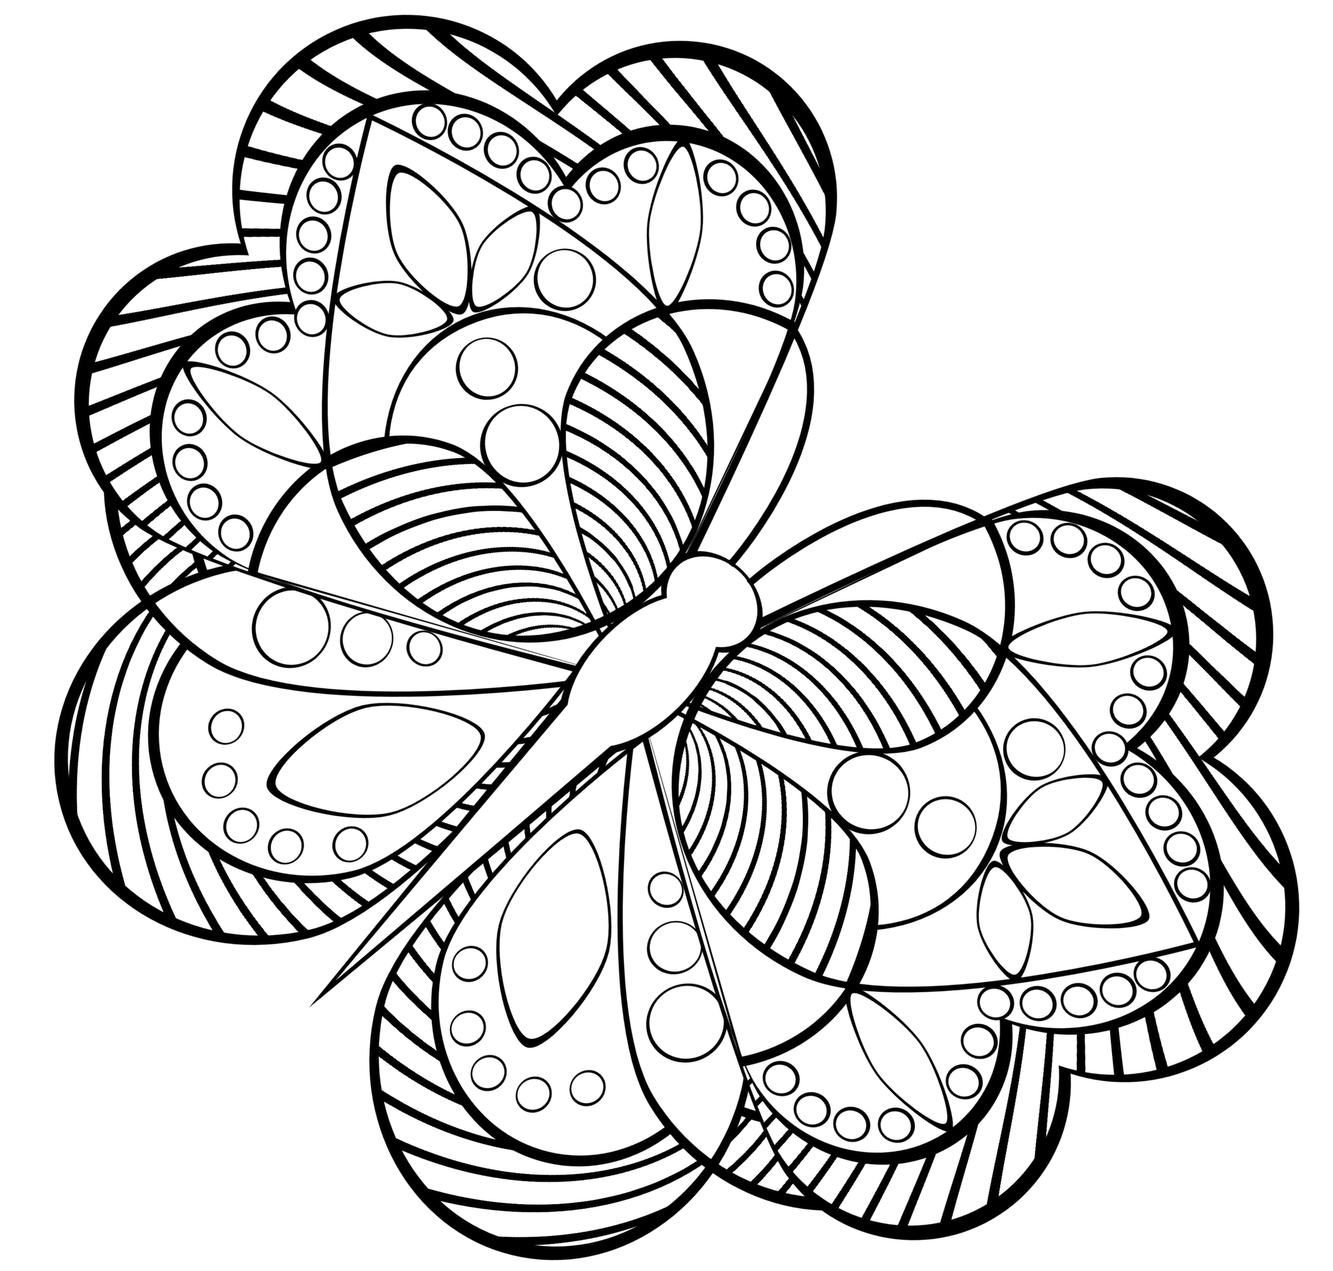 Detailed Geometric Coloring Pages | Printable Coloring Pages ...